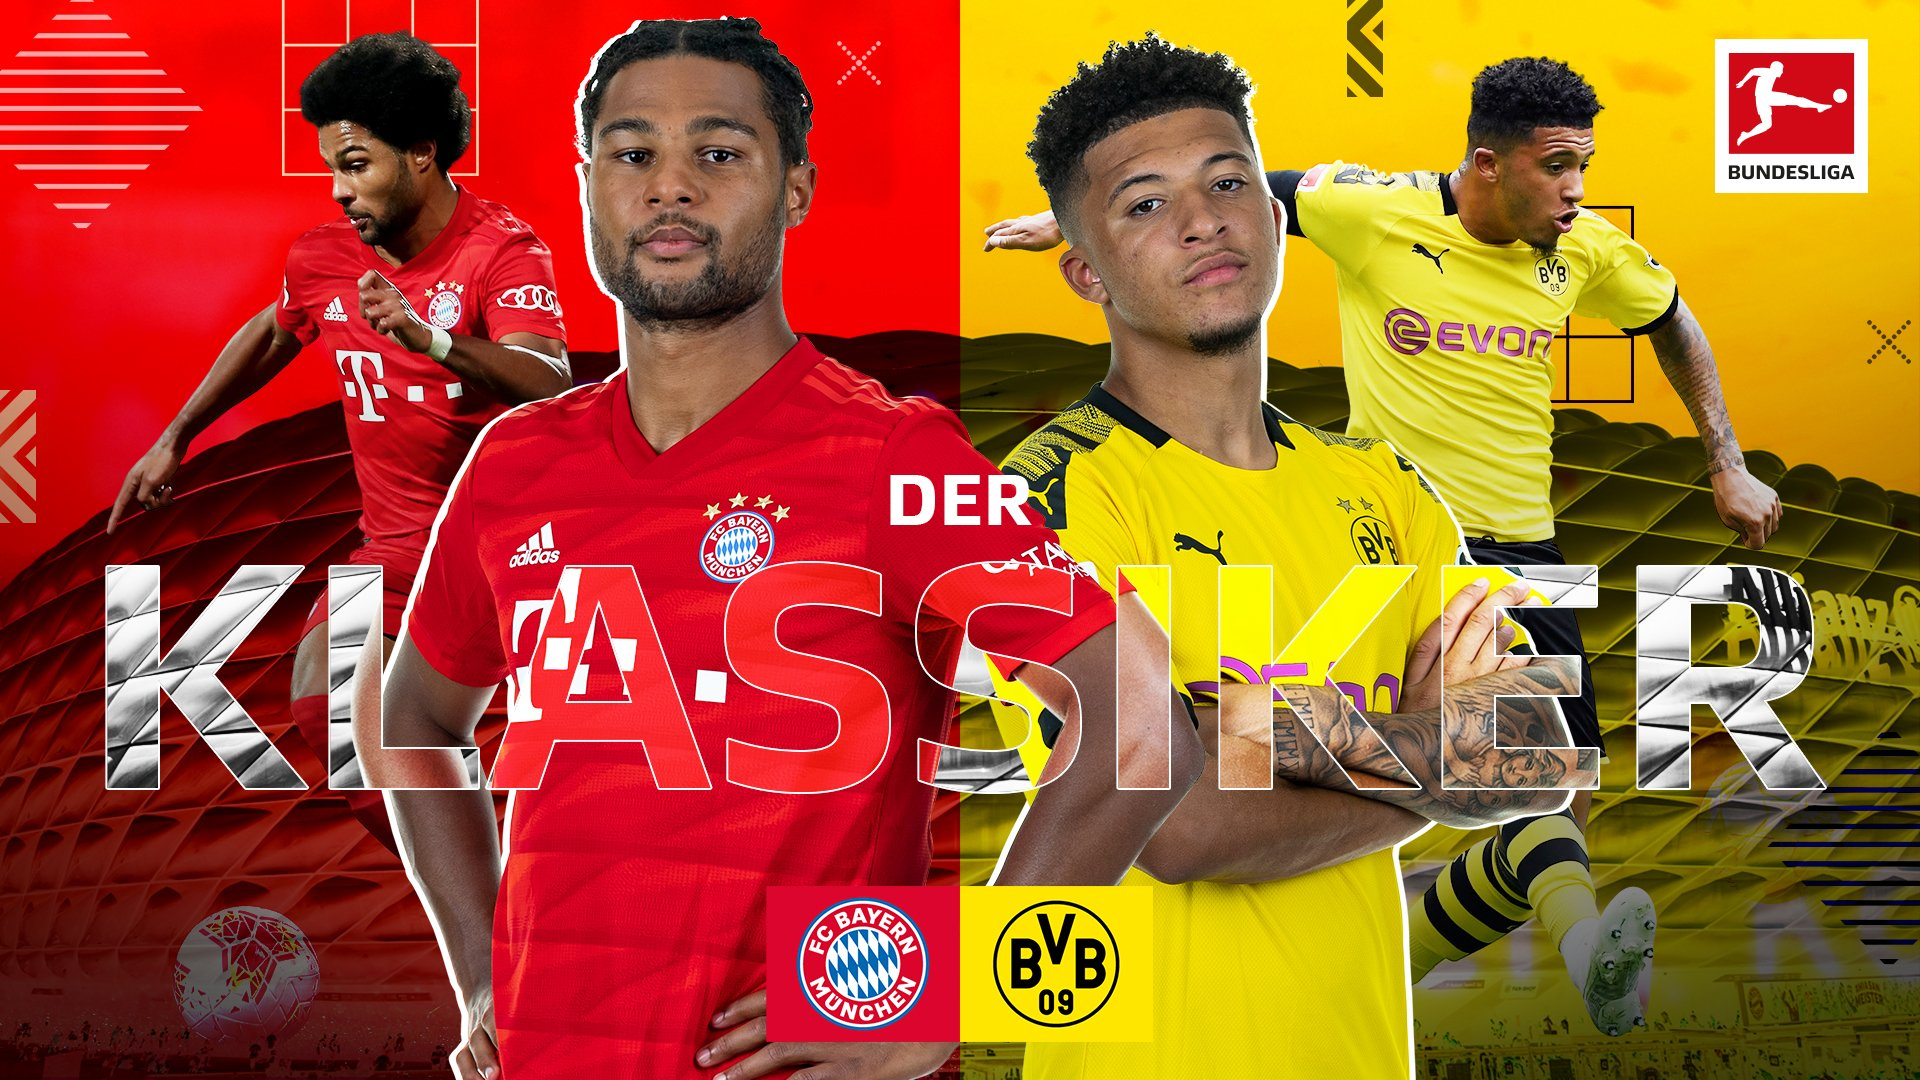 Bundesliga Fever Worldwide!: From Bayern – Dortmund 'Der Klassiker' To 'Fan Parties'